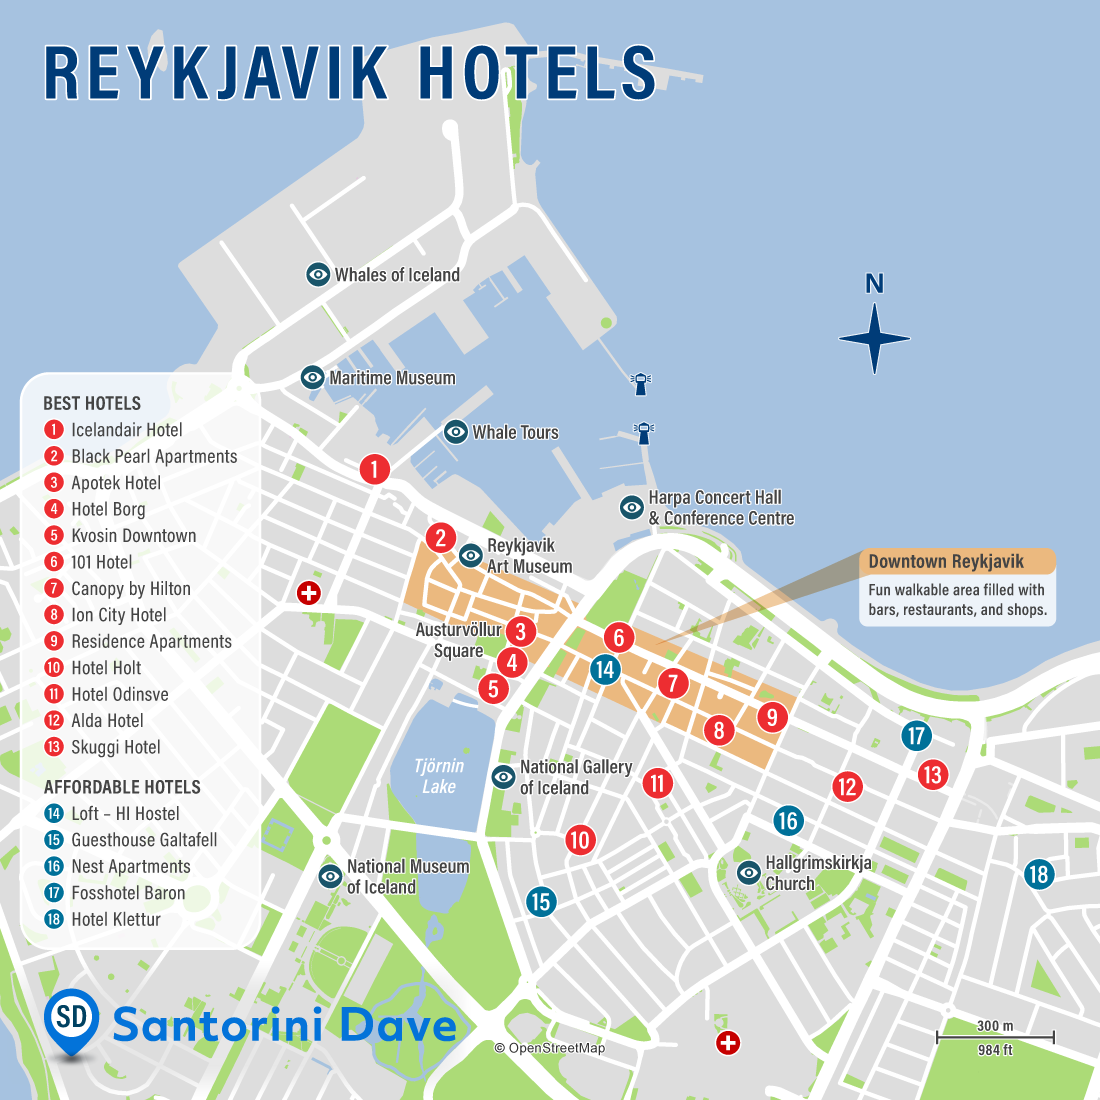 Map of Best Hotels and Neighborhoods in Reykjavik, Iceland